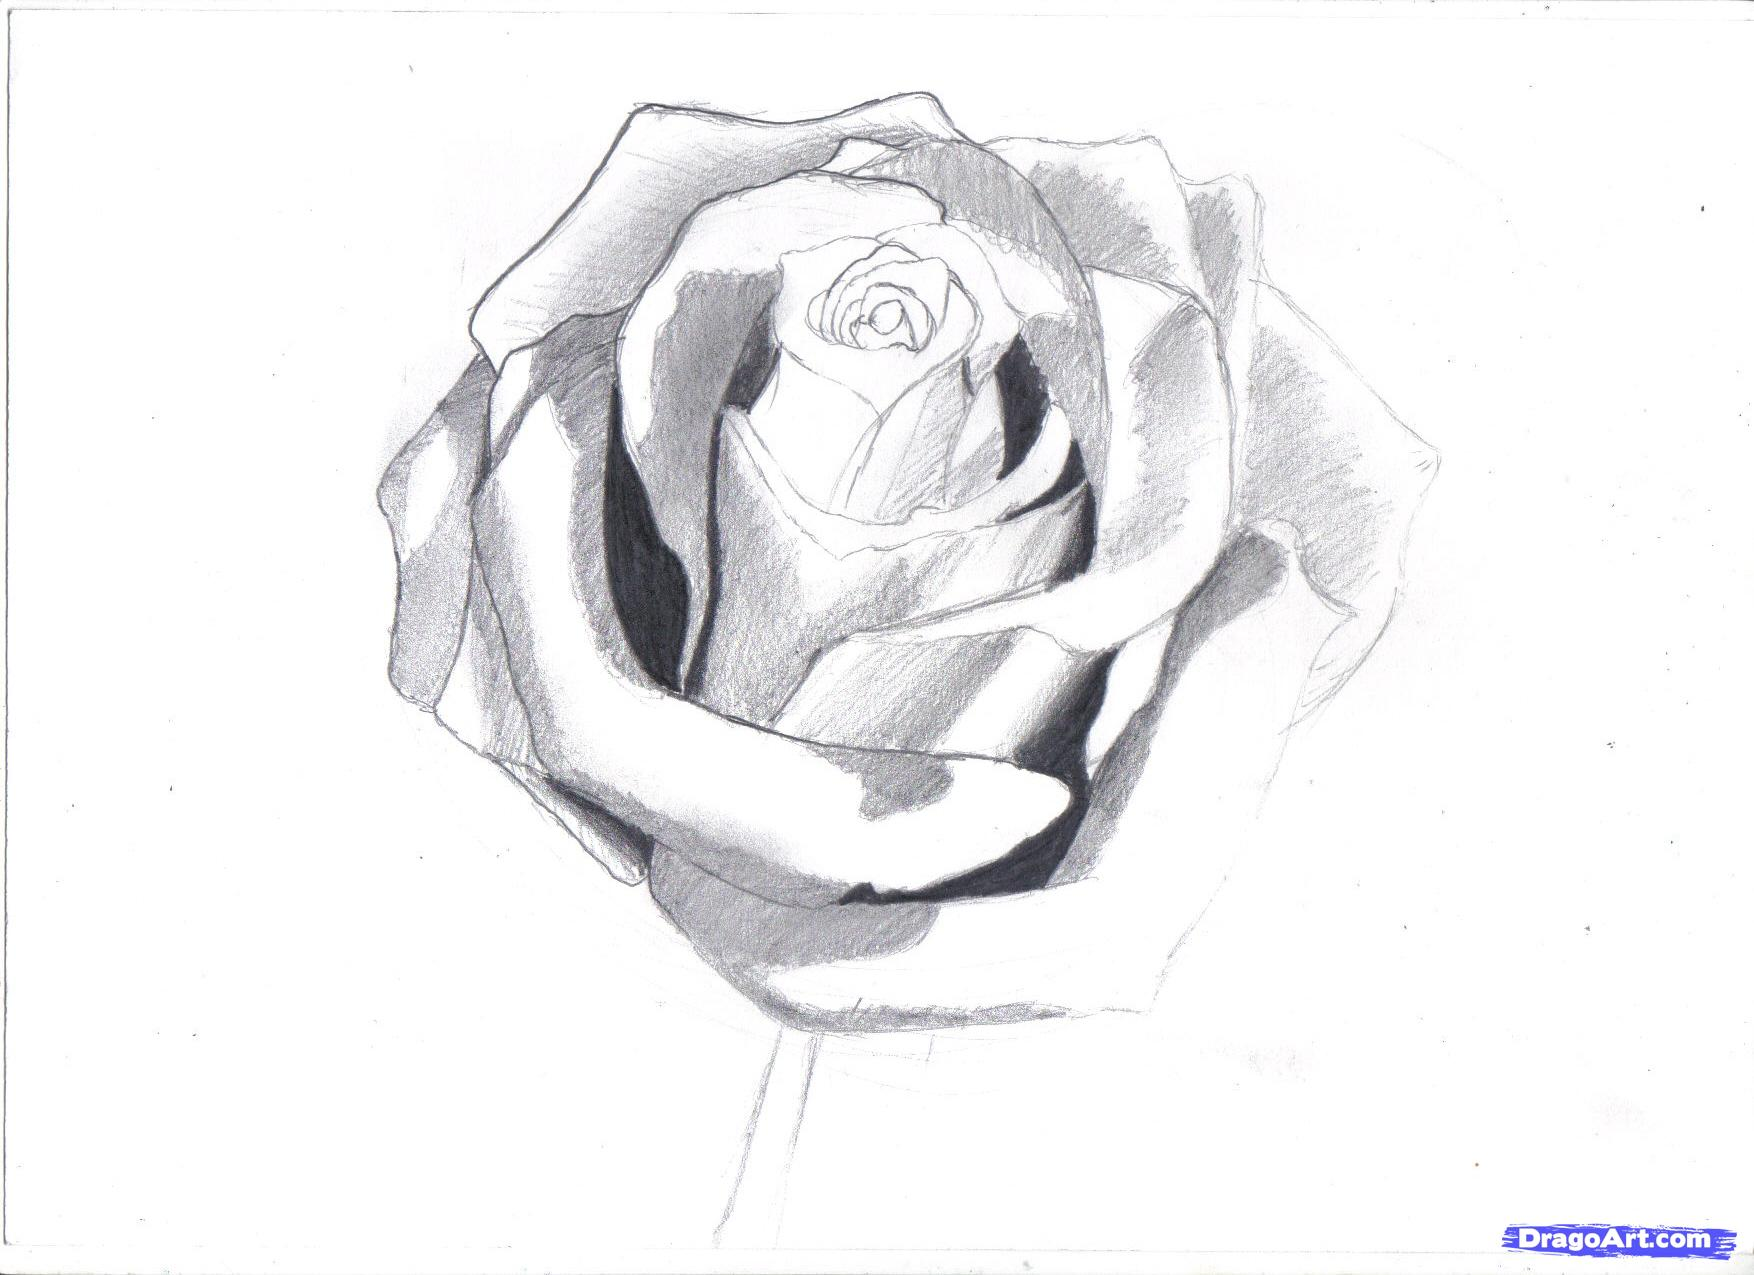 Drawn rose simple realism A rose realistic rose